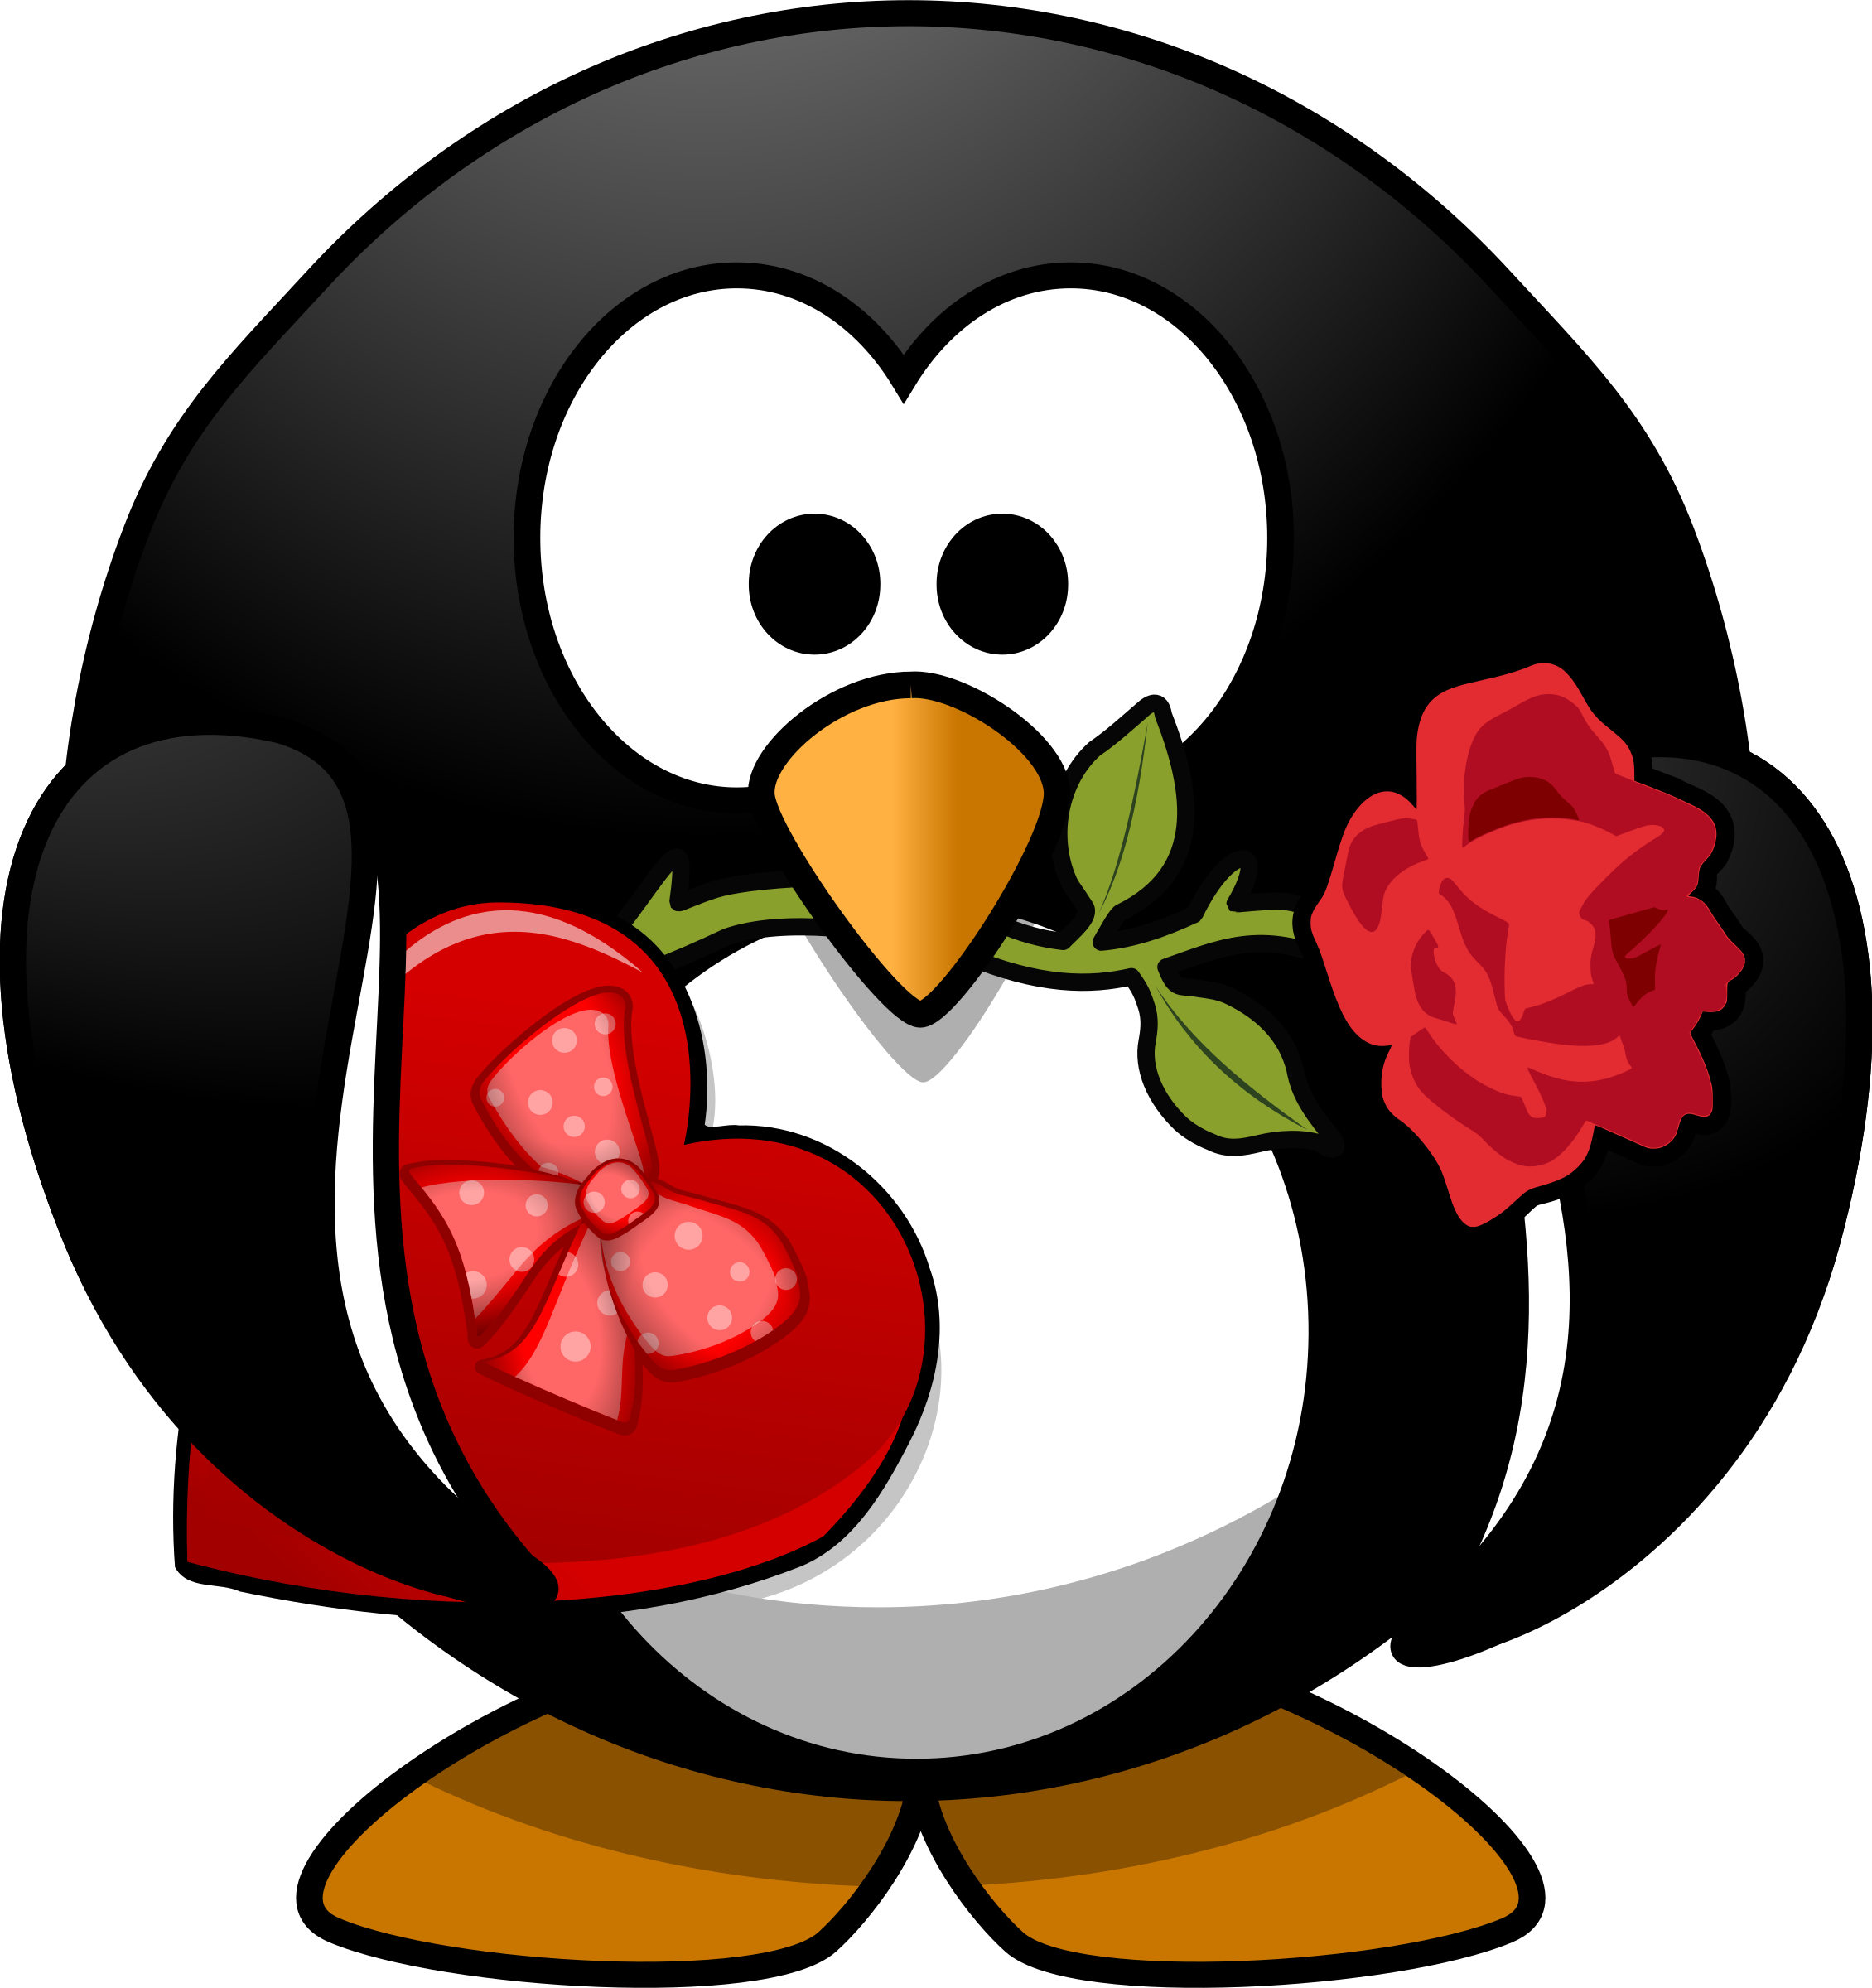 Heart clipart penguin, Heart penguin Transparent FREE for ...